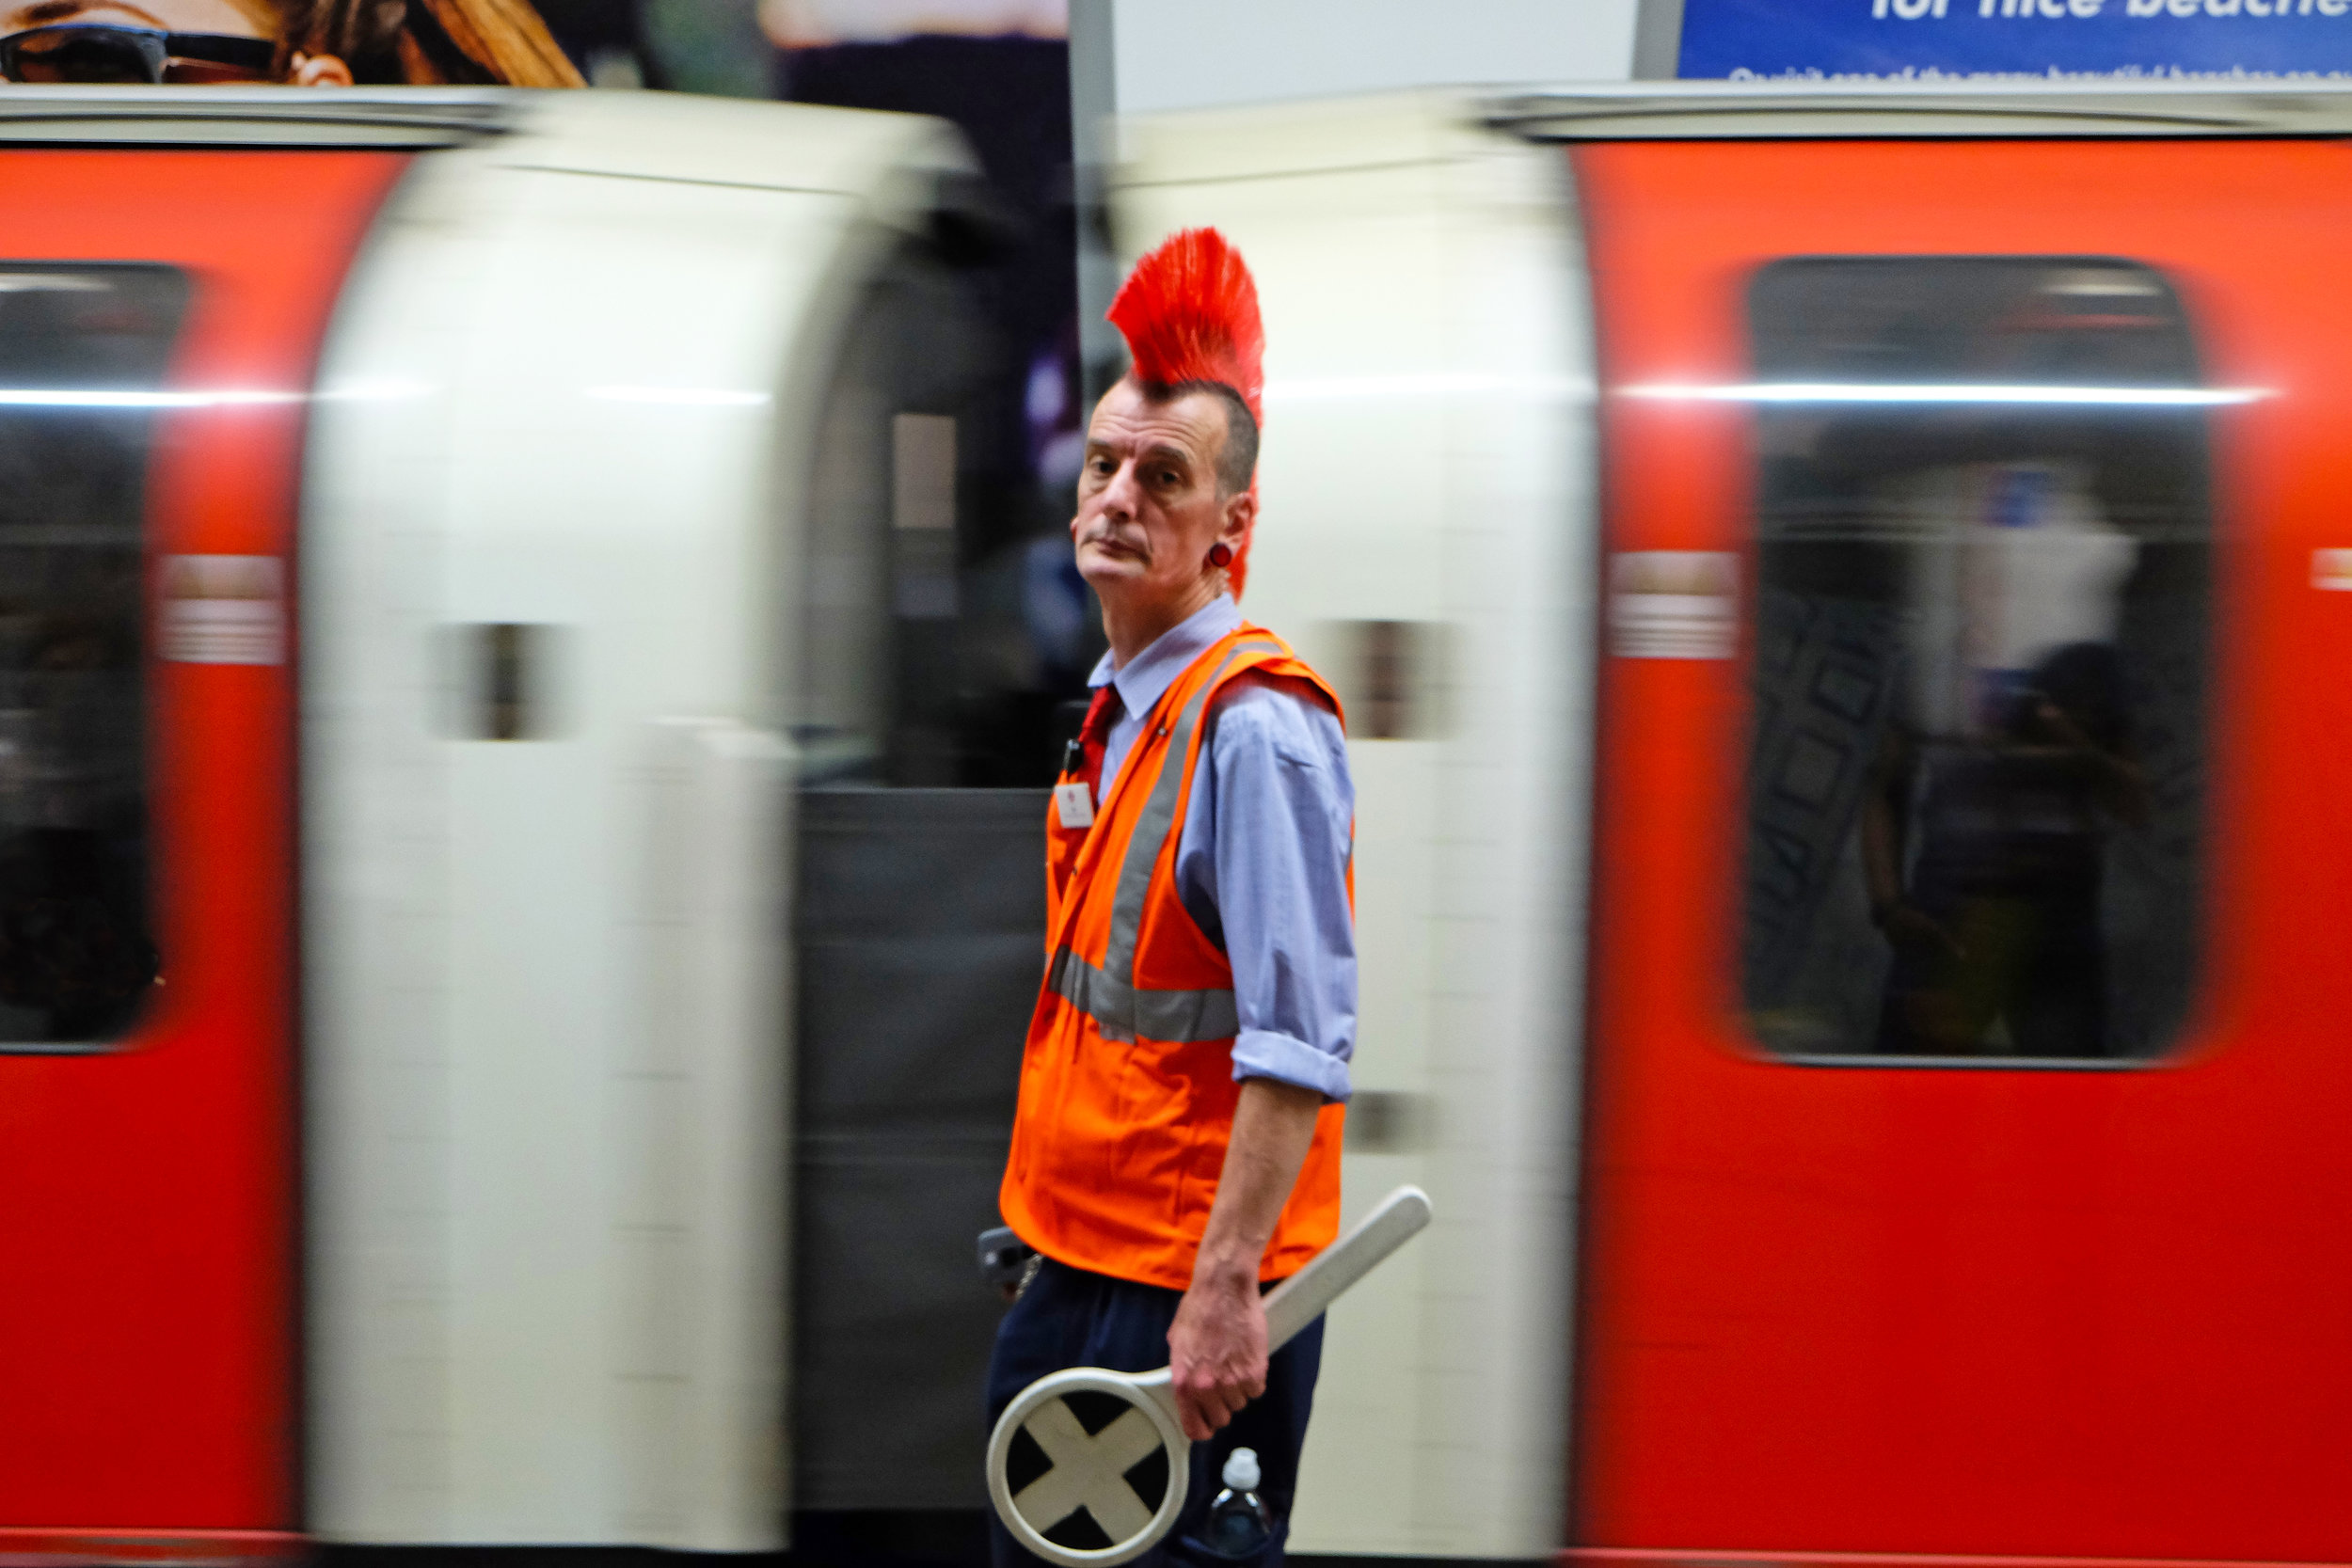 Mohican tube announcer